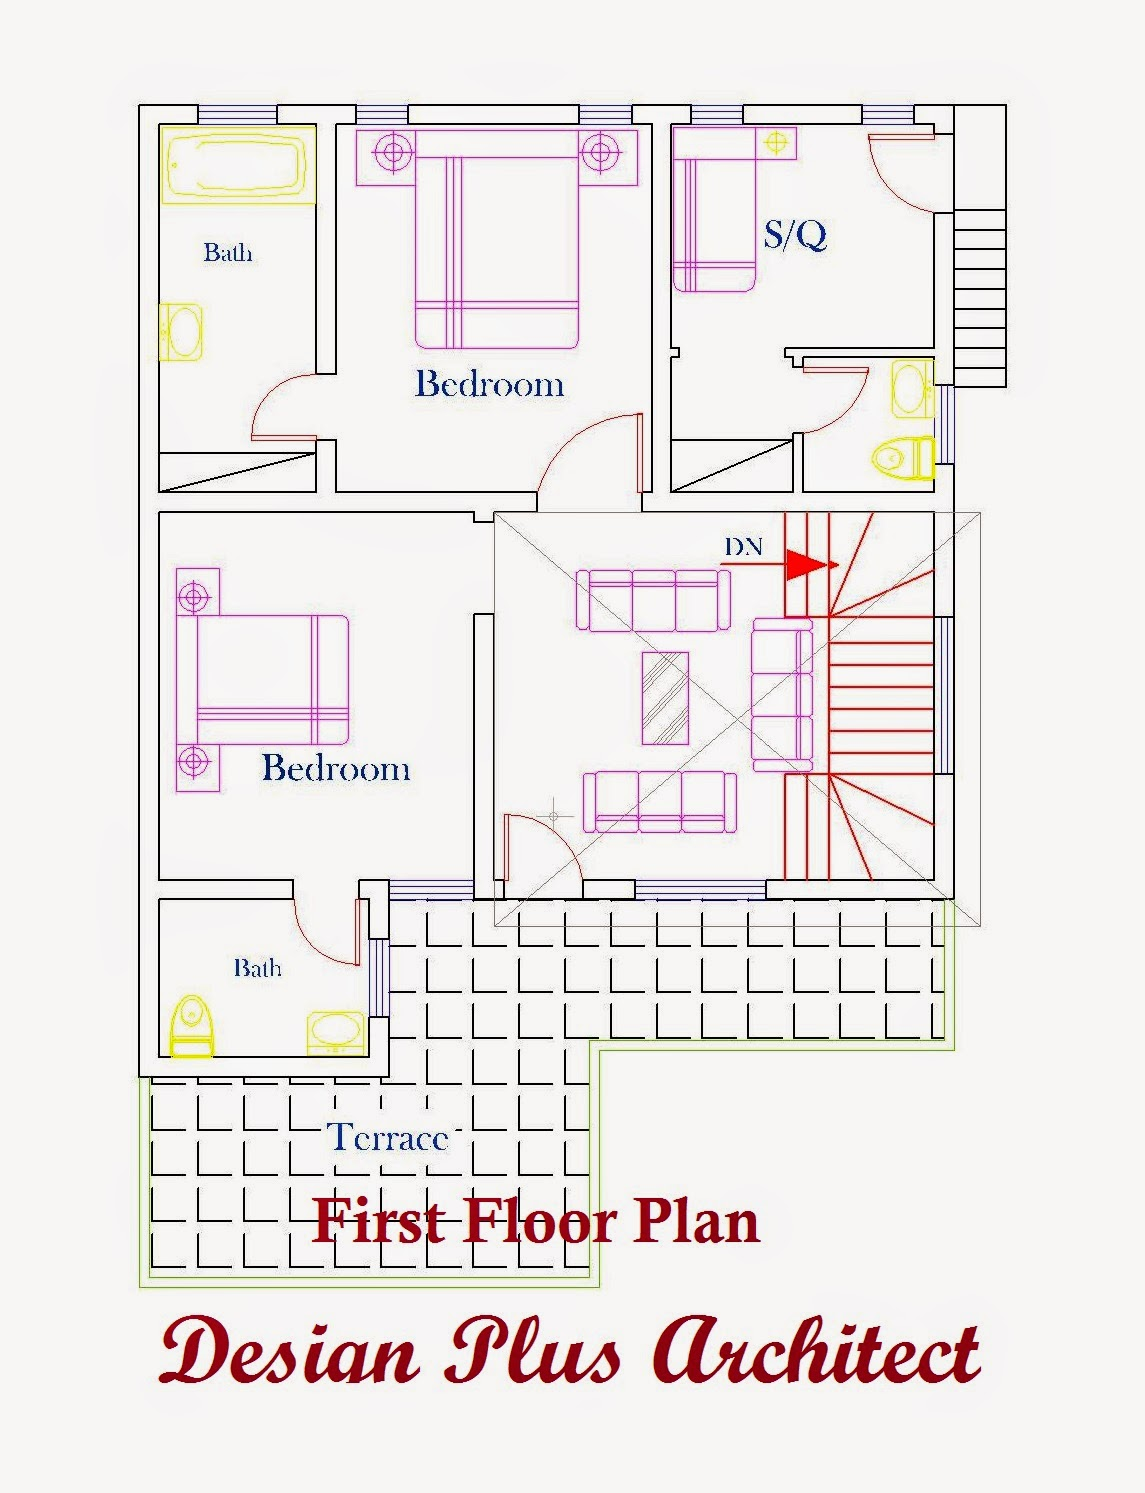 Home Plans In Pakistan  Home Decor  Architect Designer   d Home Plan d home palns  First Floor Plan